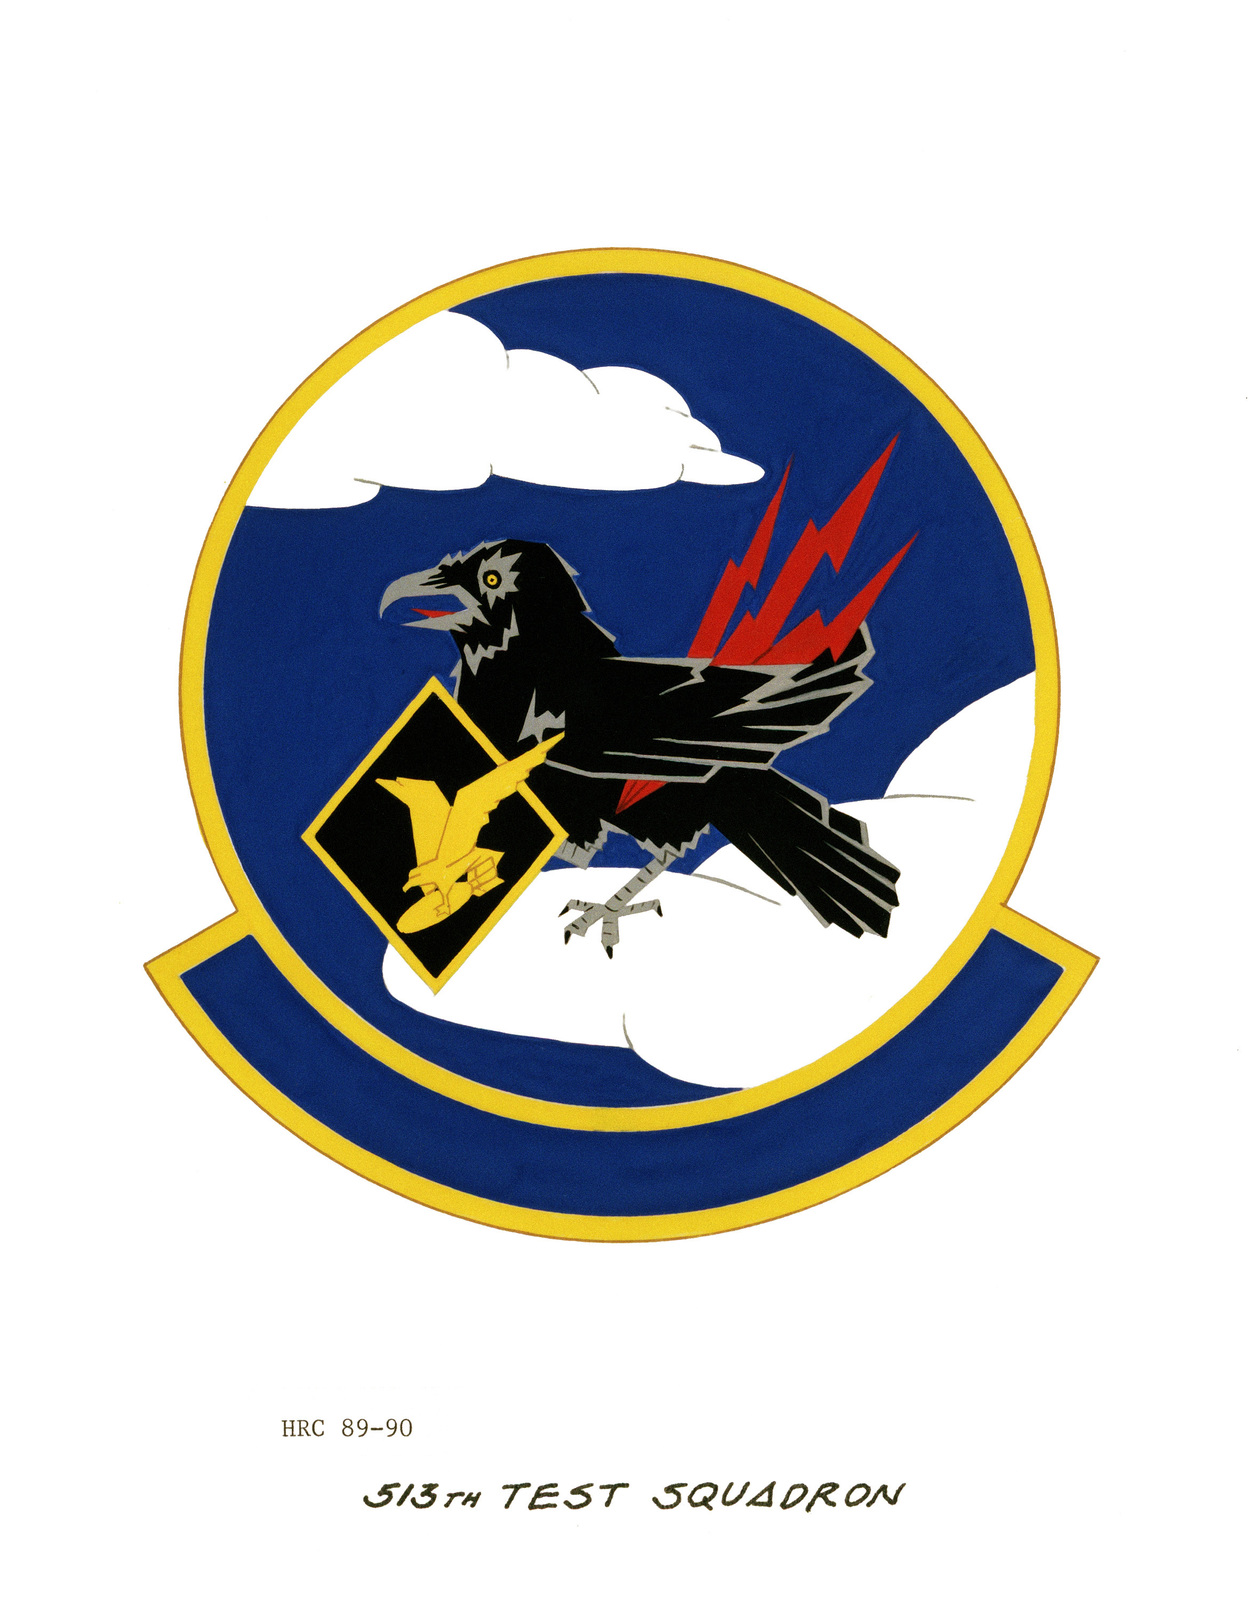 Approved insignia for: 513th Test Squadron